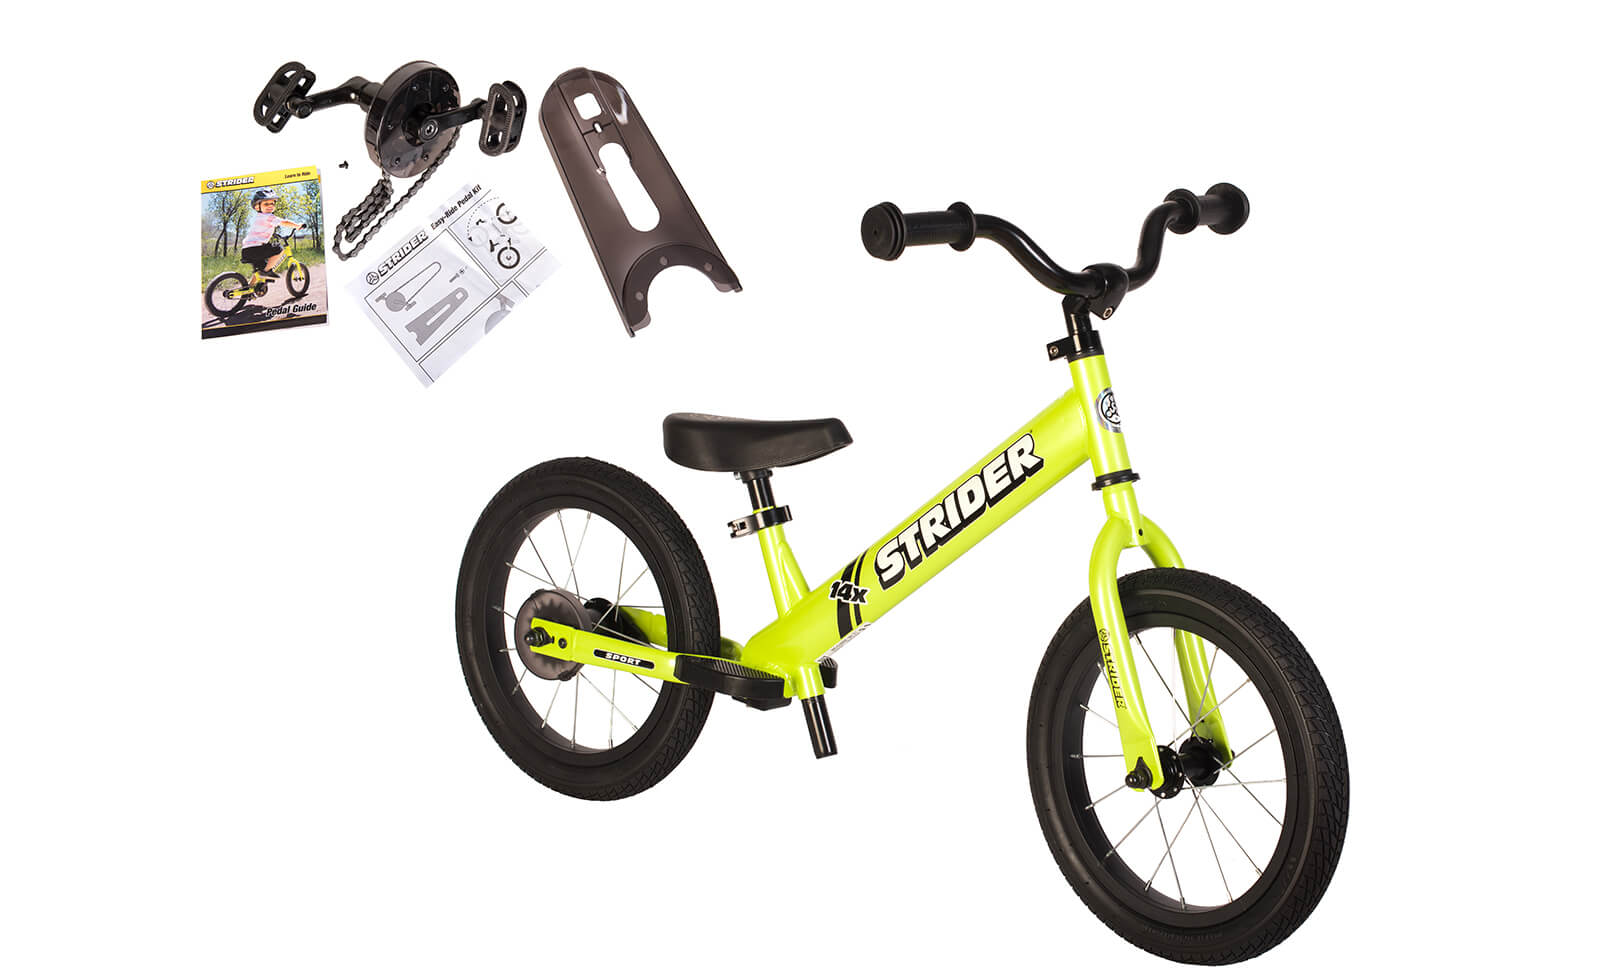 Strider 14x Sport - Green with Easy-Ride Pedal Conversion Kit